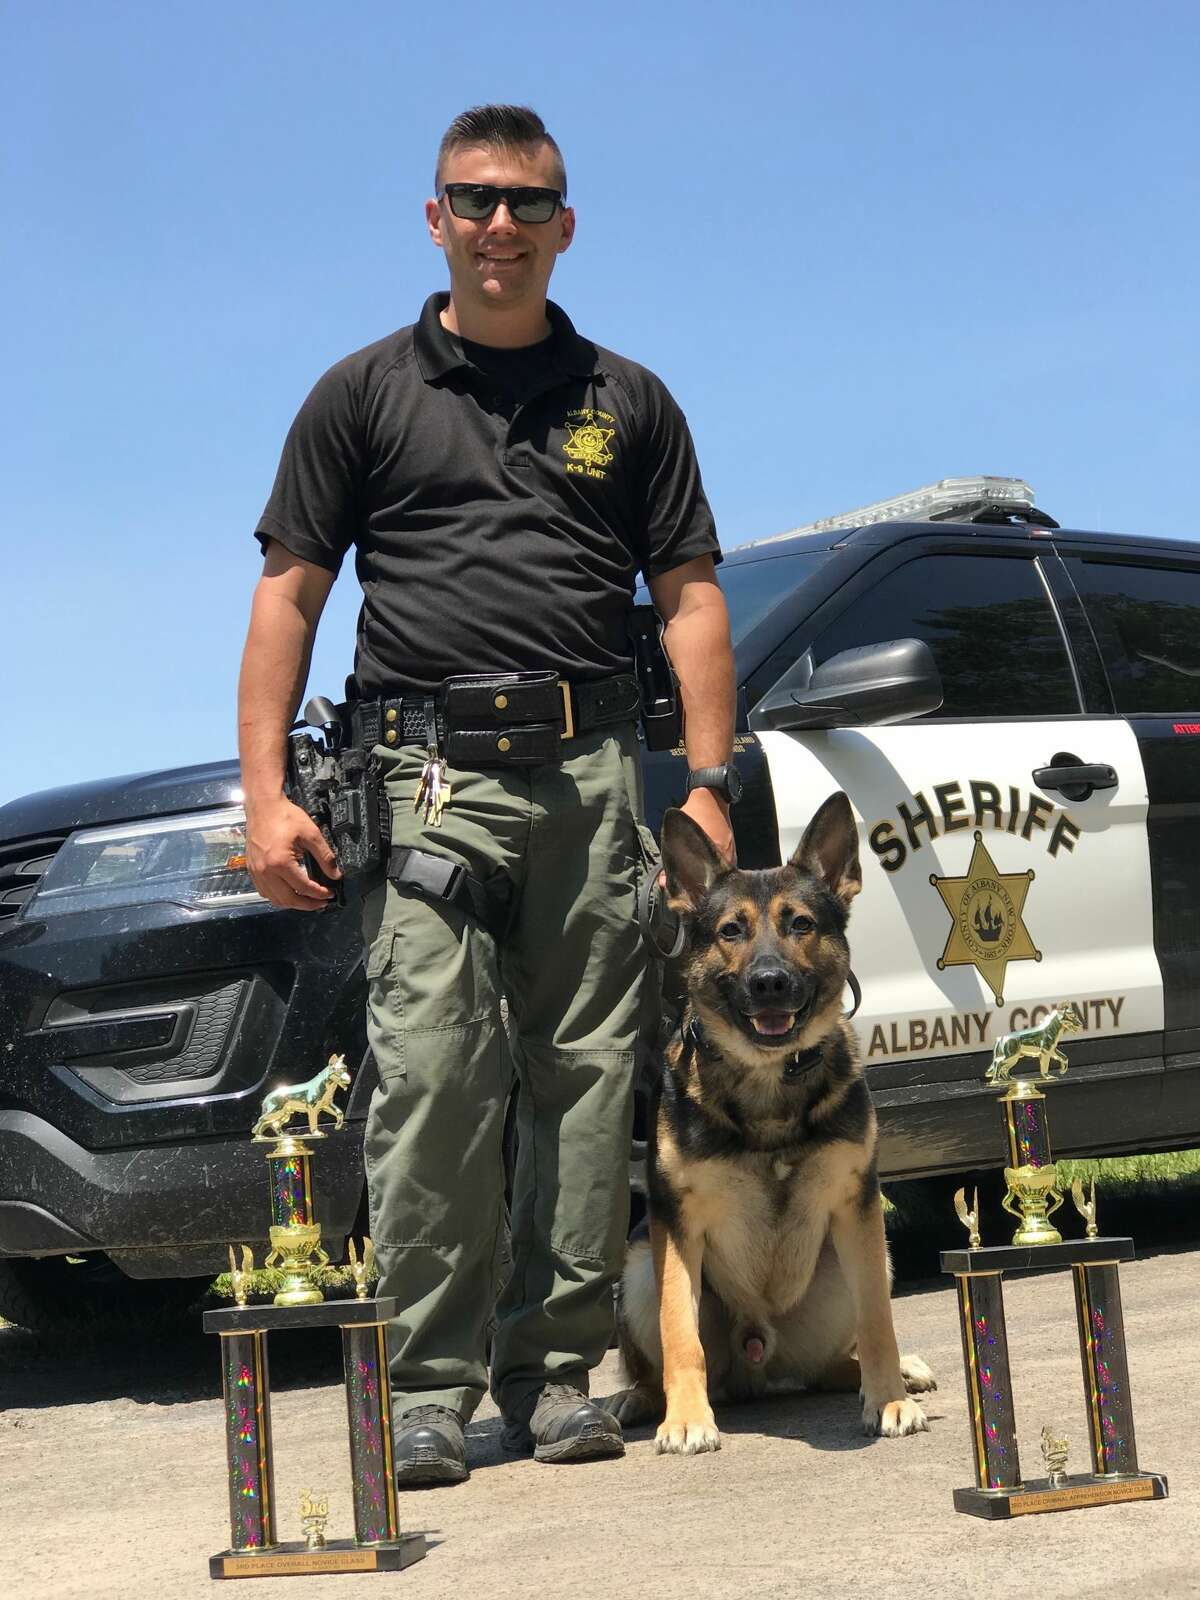 Albany County Sheriff Sgt. Joseph Iachetta, with his K9 Rice. Iachetta has worked at the Albany County Sheriff's Office for seven years, said Sheriff Craig Apple. He was severely injured in a crash in Colonie Feb. 8, 2021.